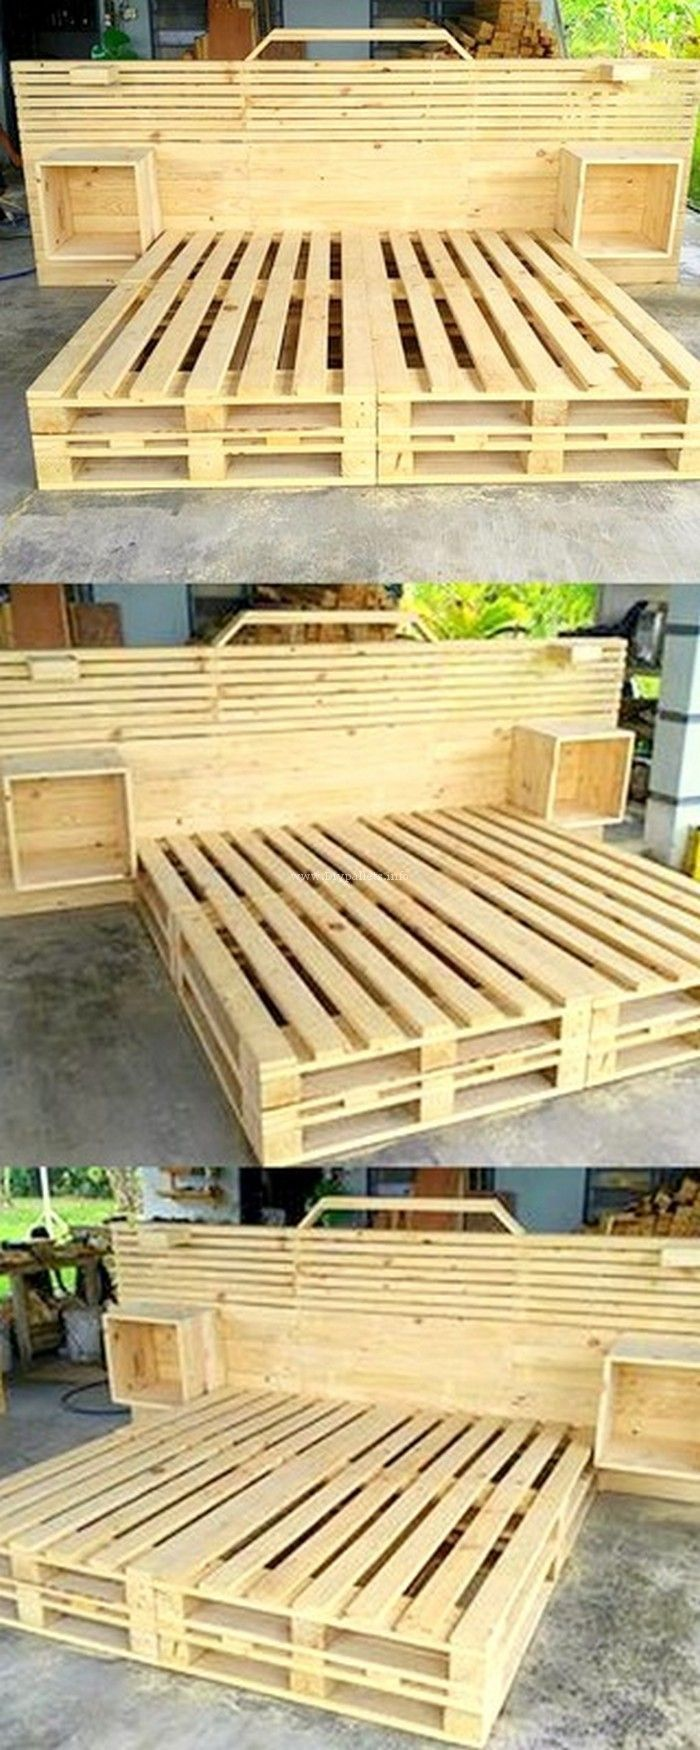 Houten Meubels Slaapkamer Awesome Pallets Beds Recycling Pallets Crates Etc Pinterest